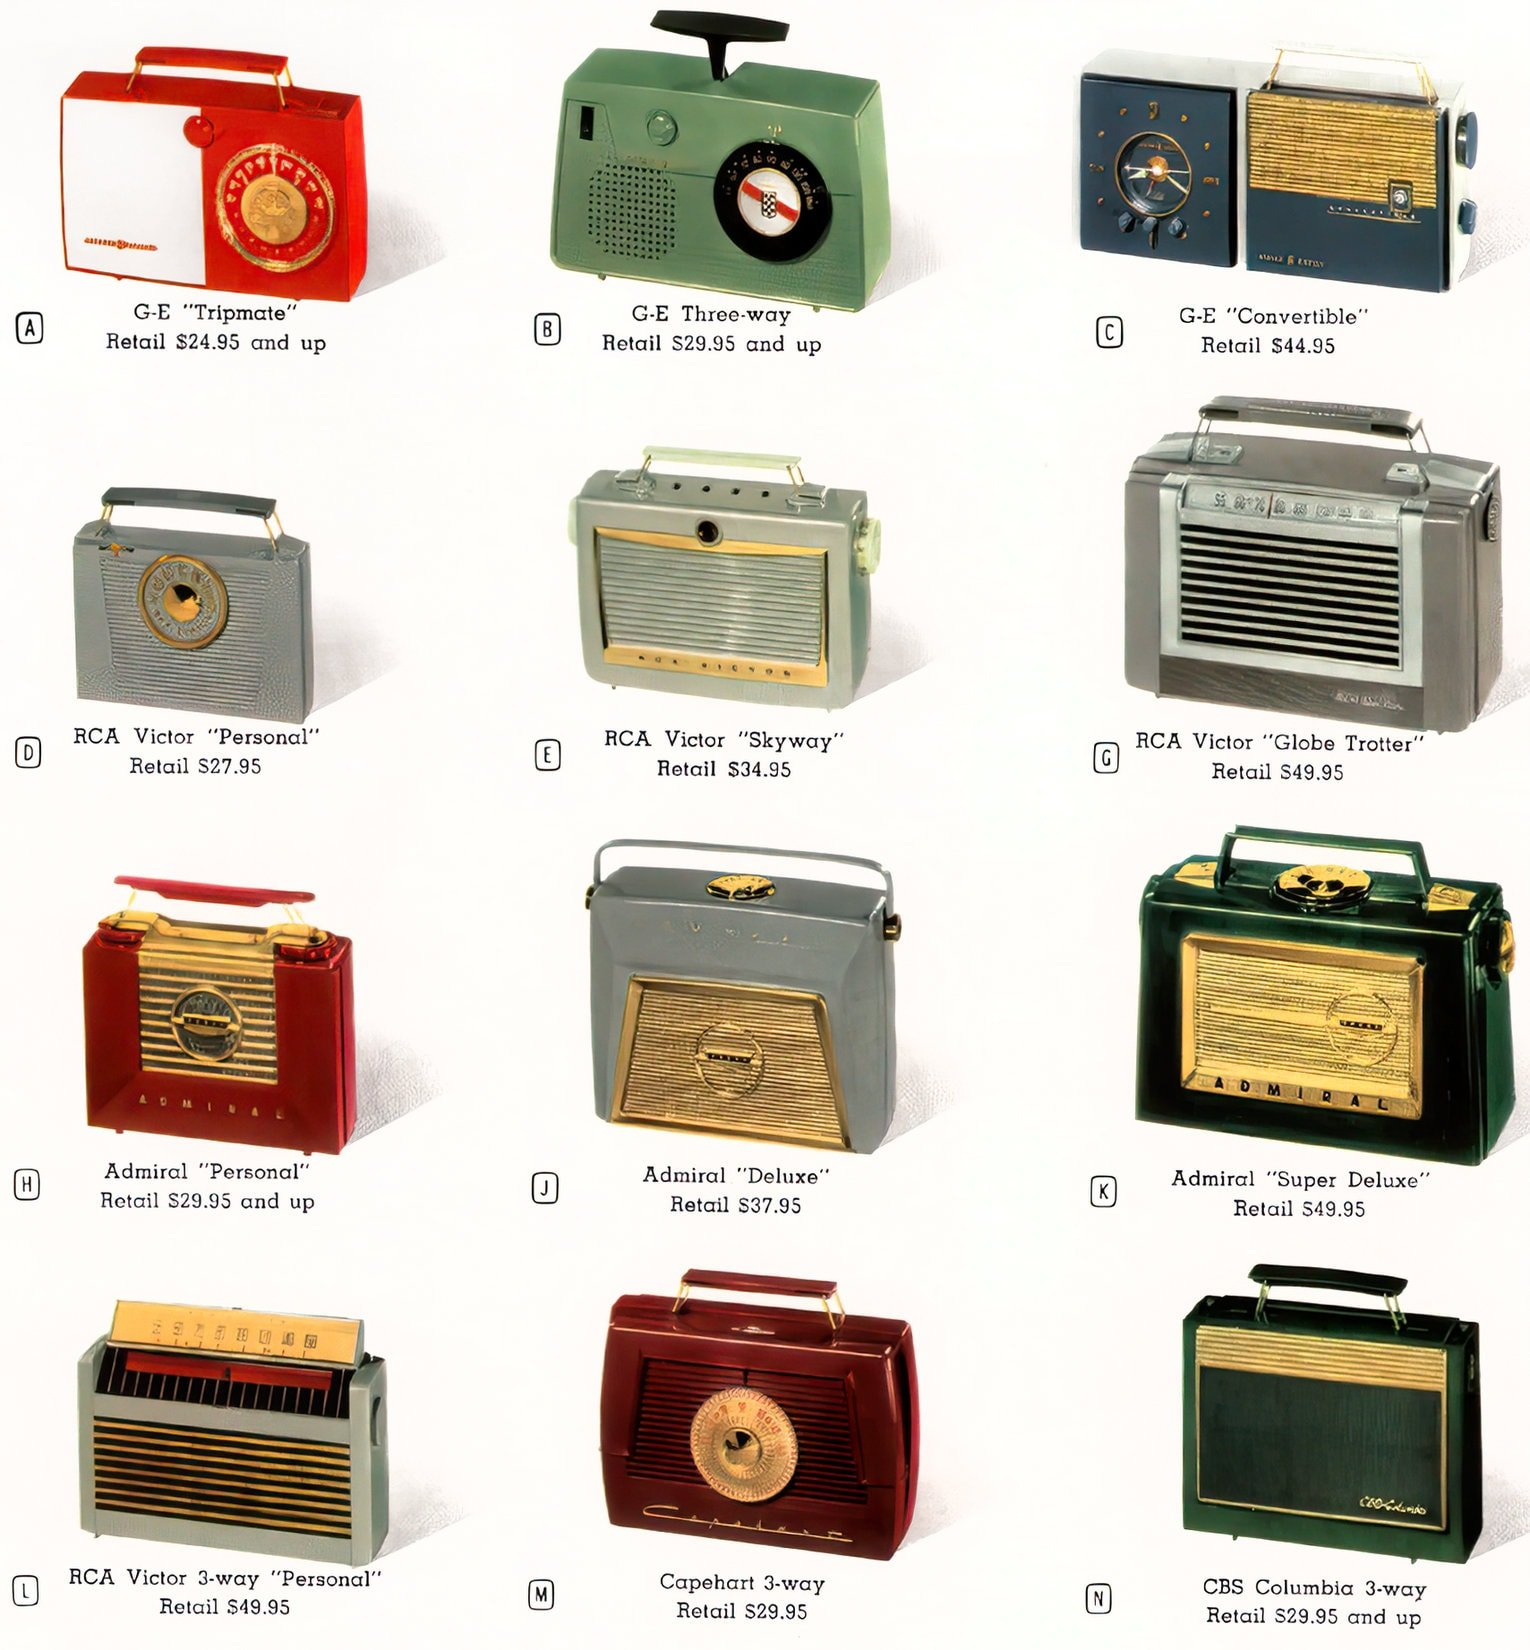 Old portable radios from the 1950s